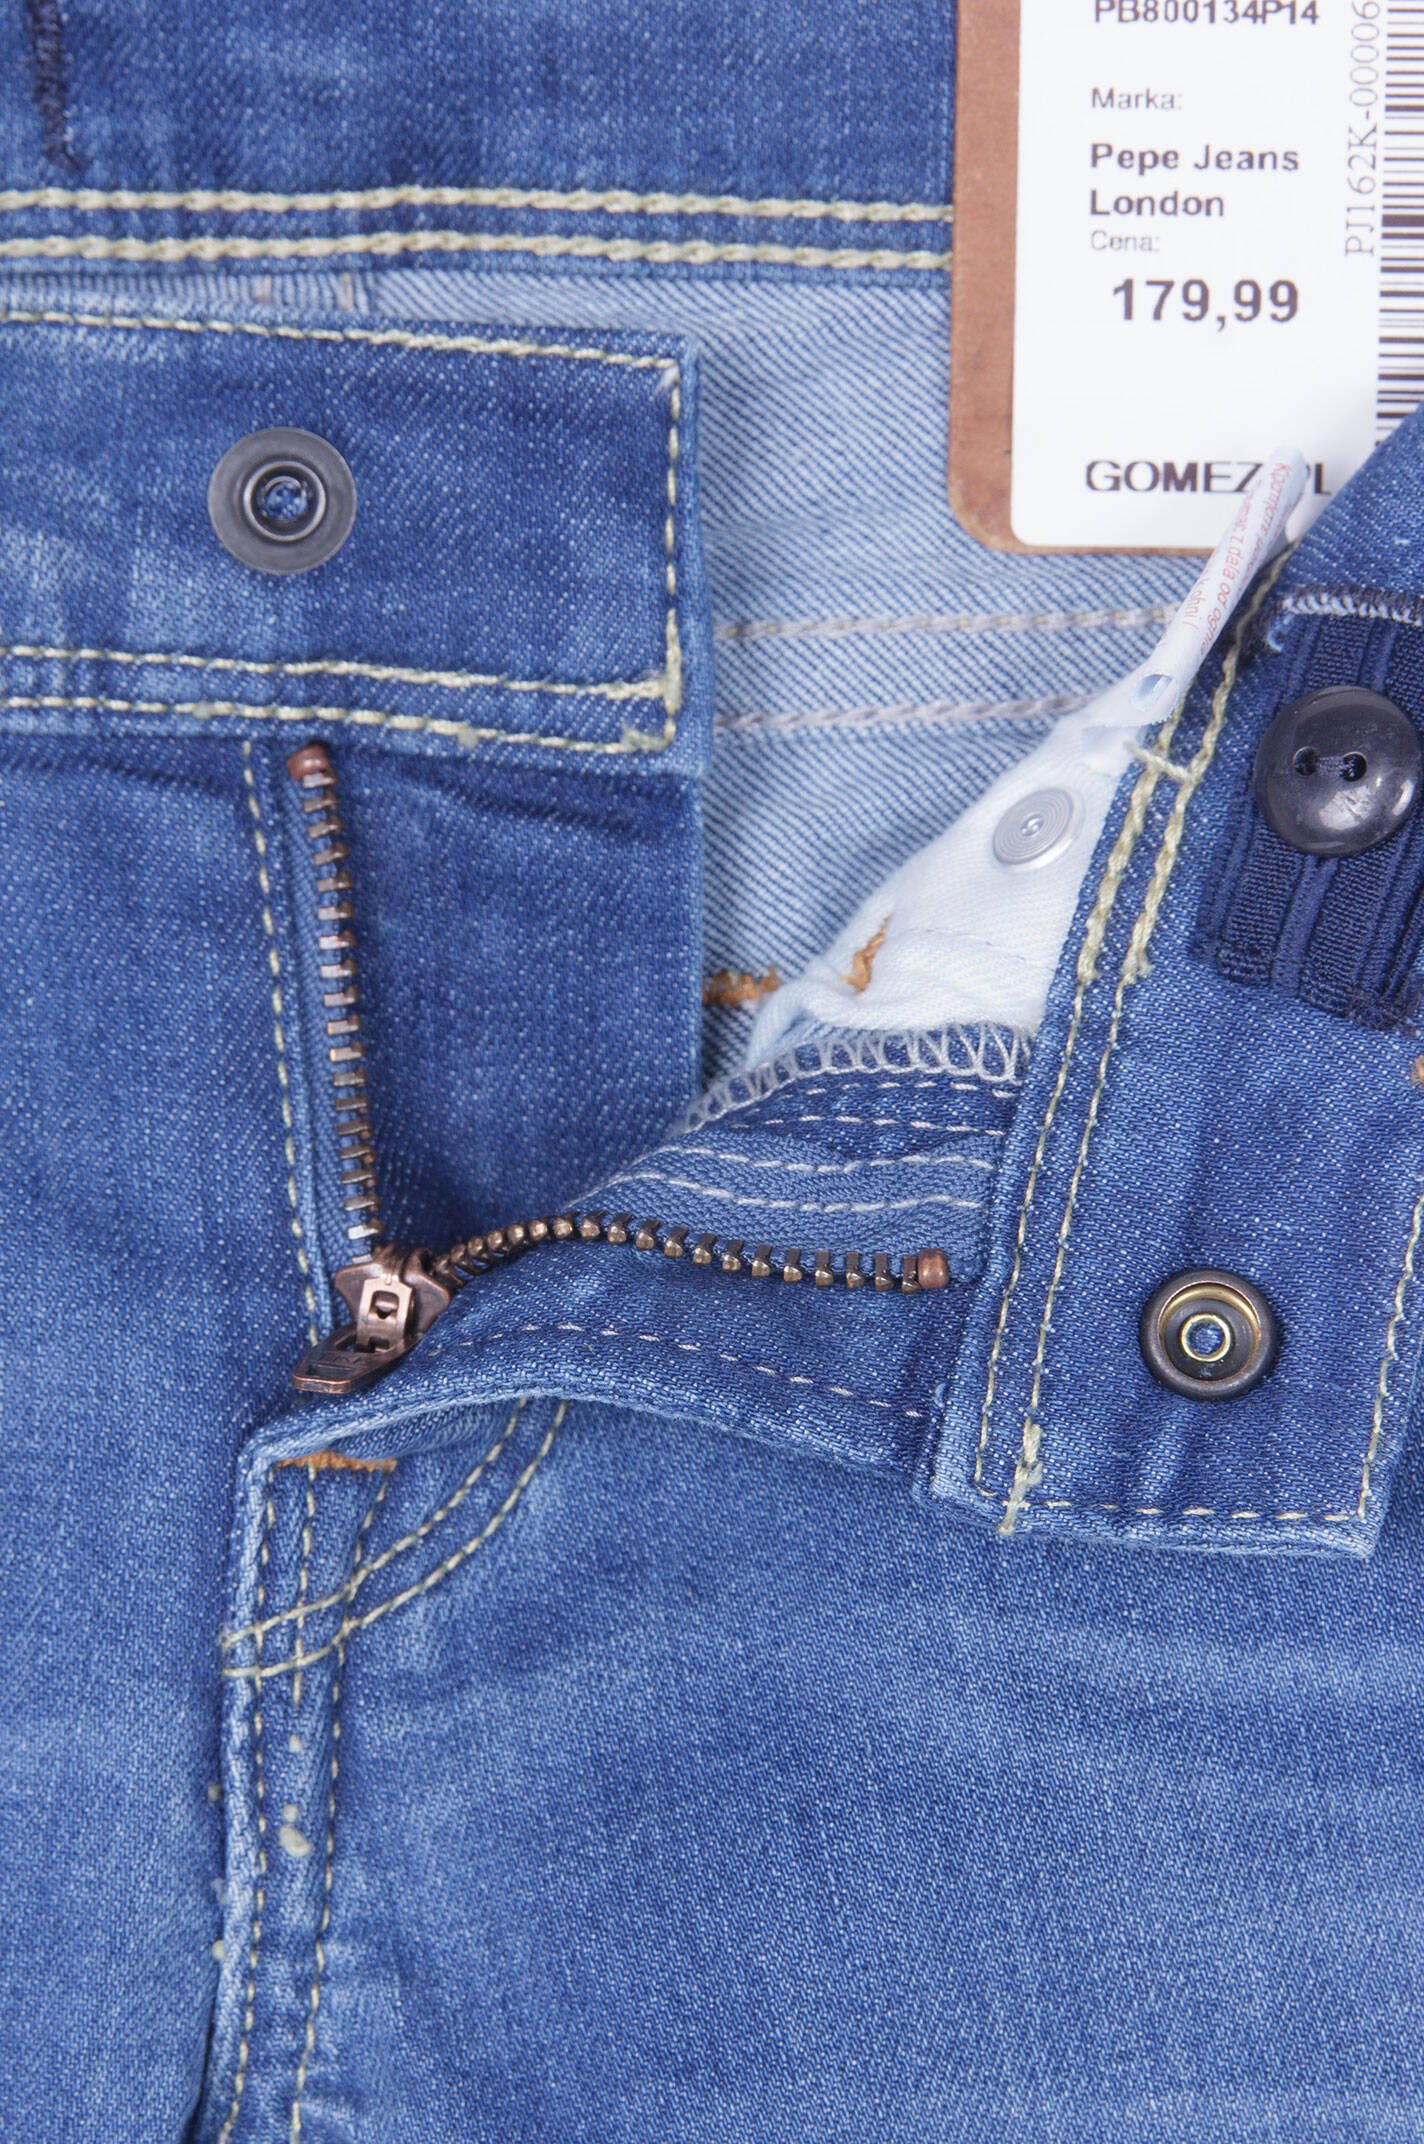 ca59927f20a Becket shorts Pepe Jeans London